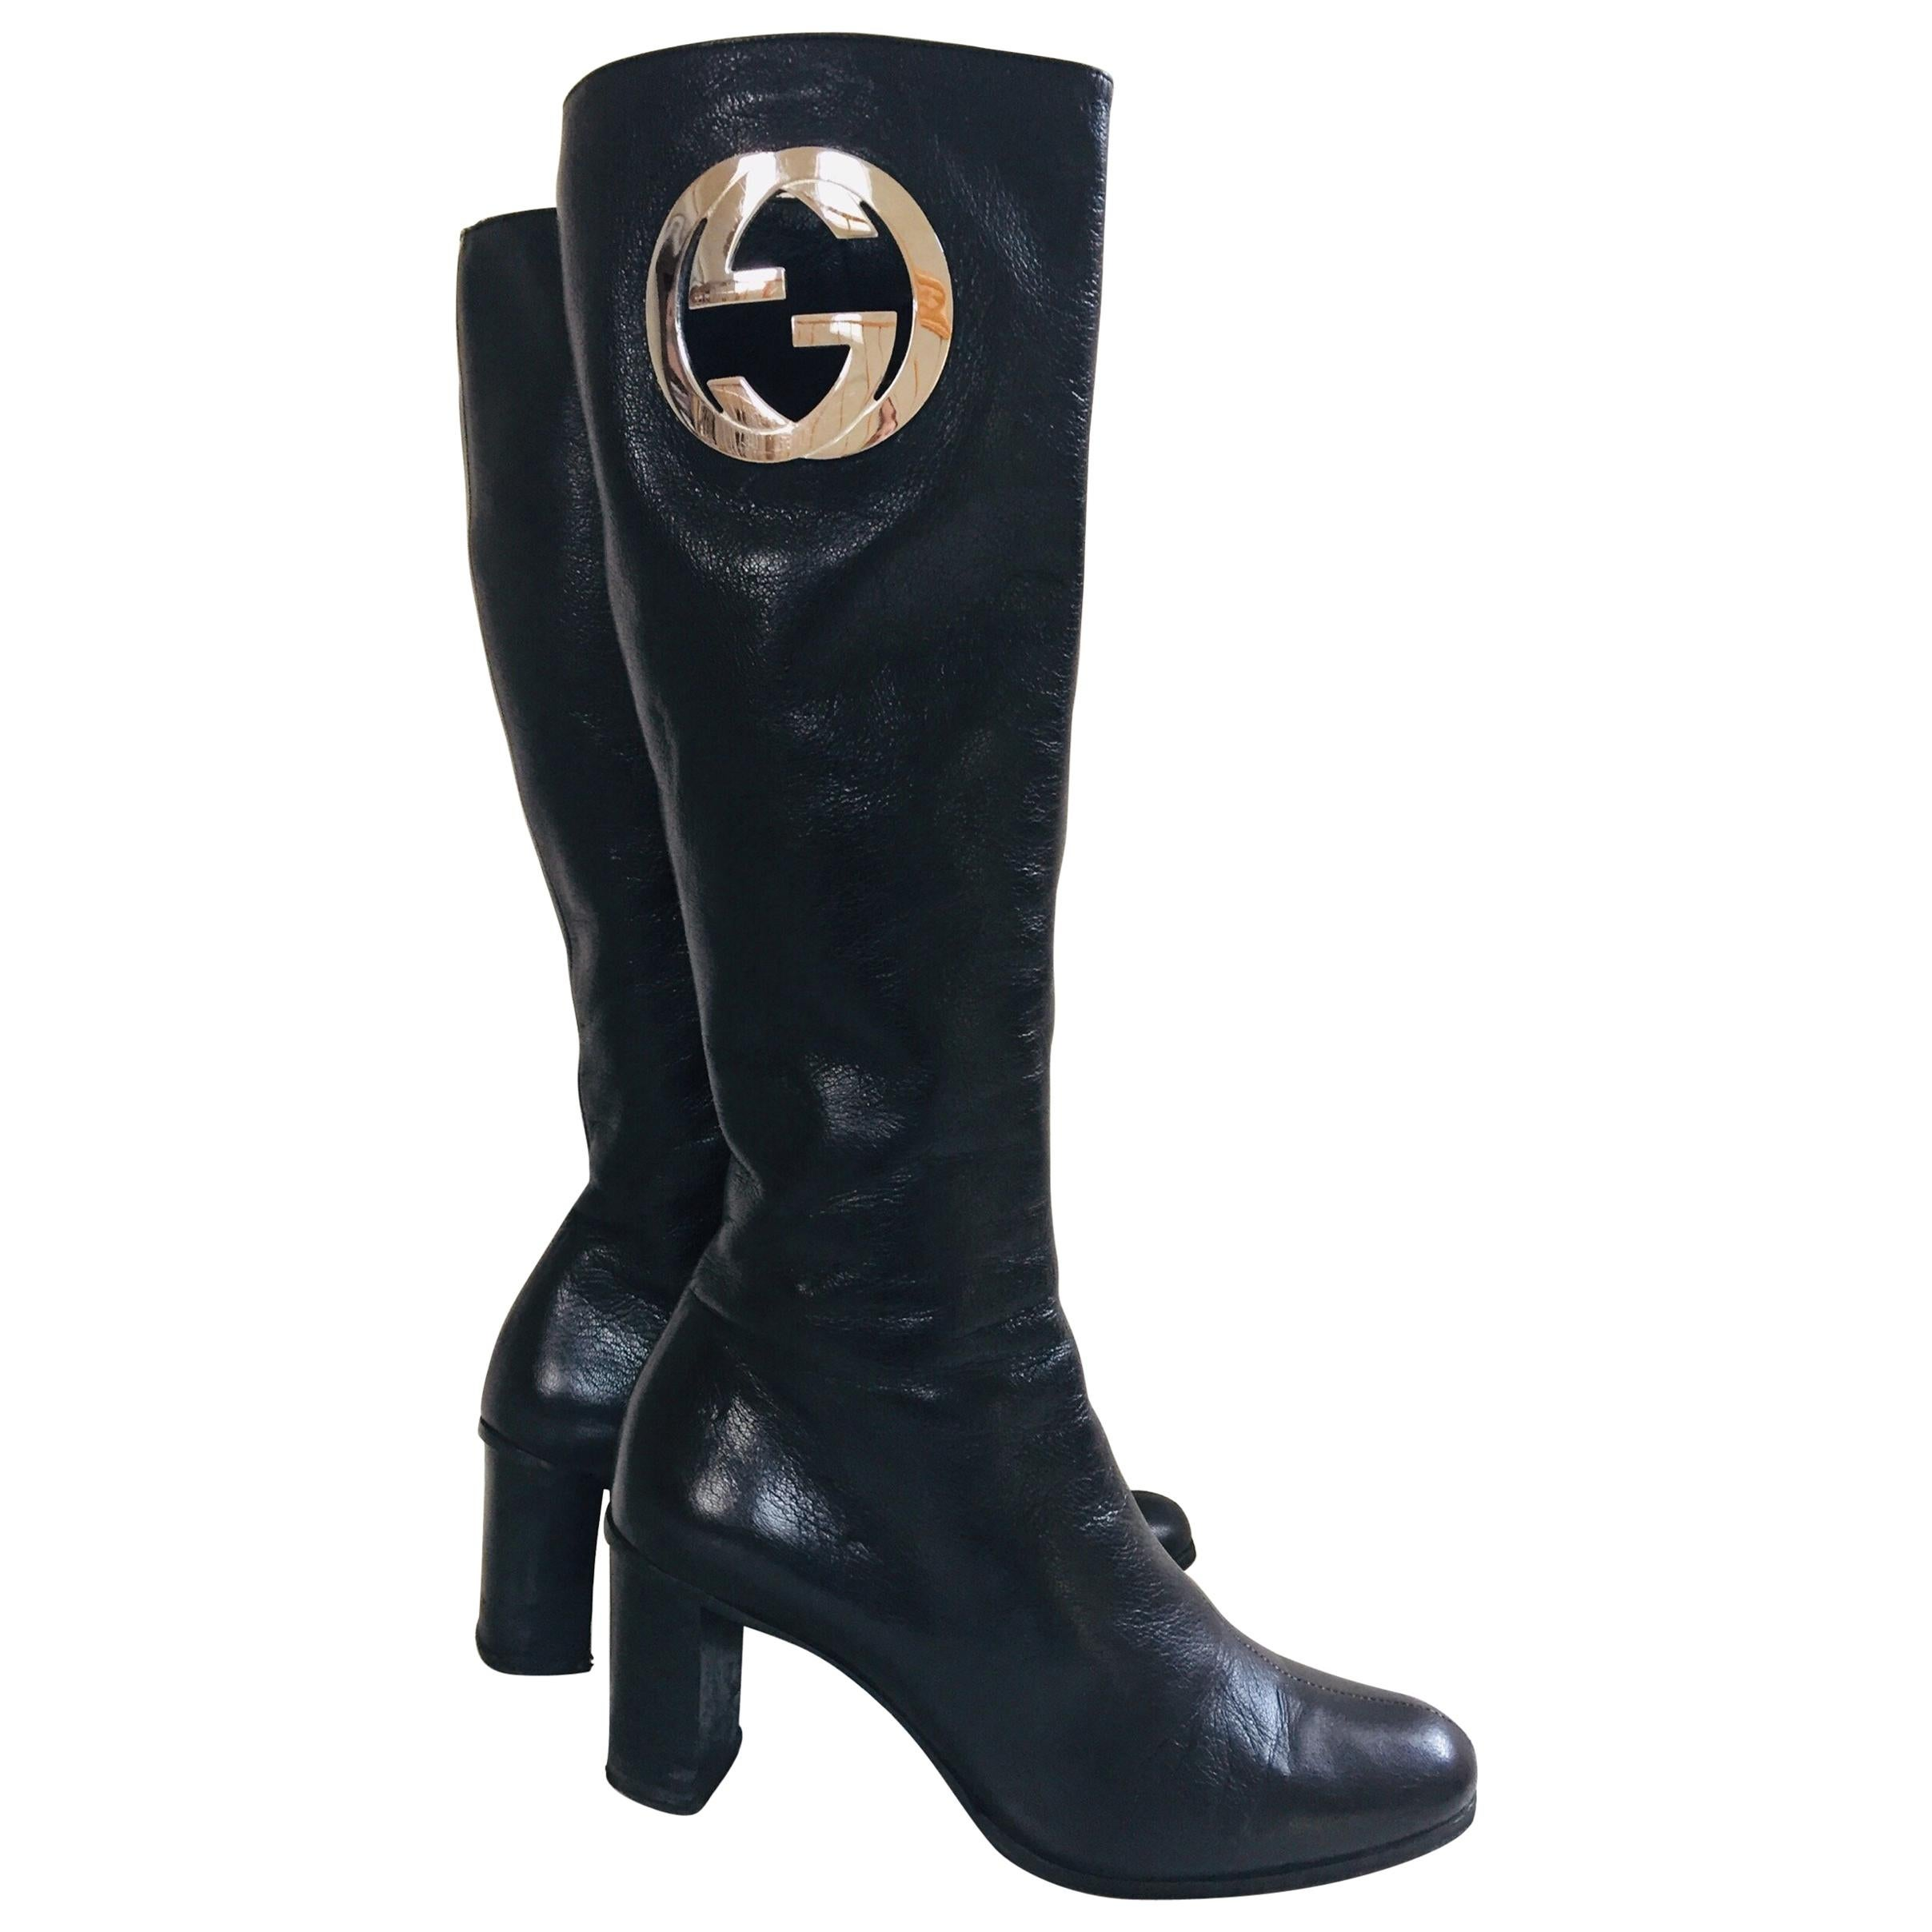 Gucci by Tom Ford Black Leather Boots